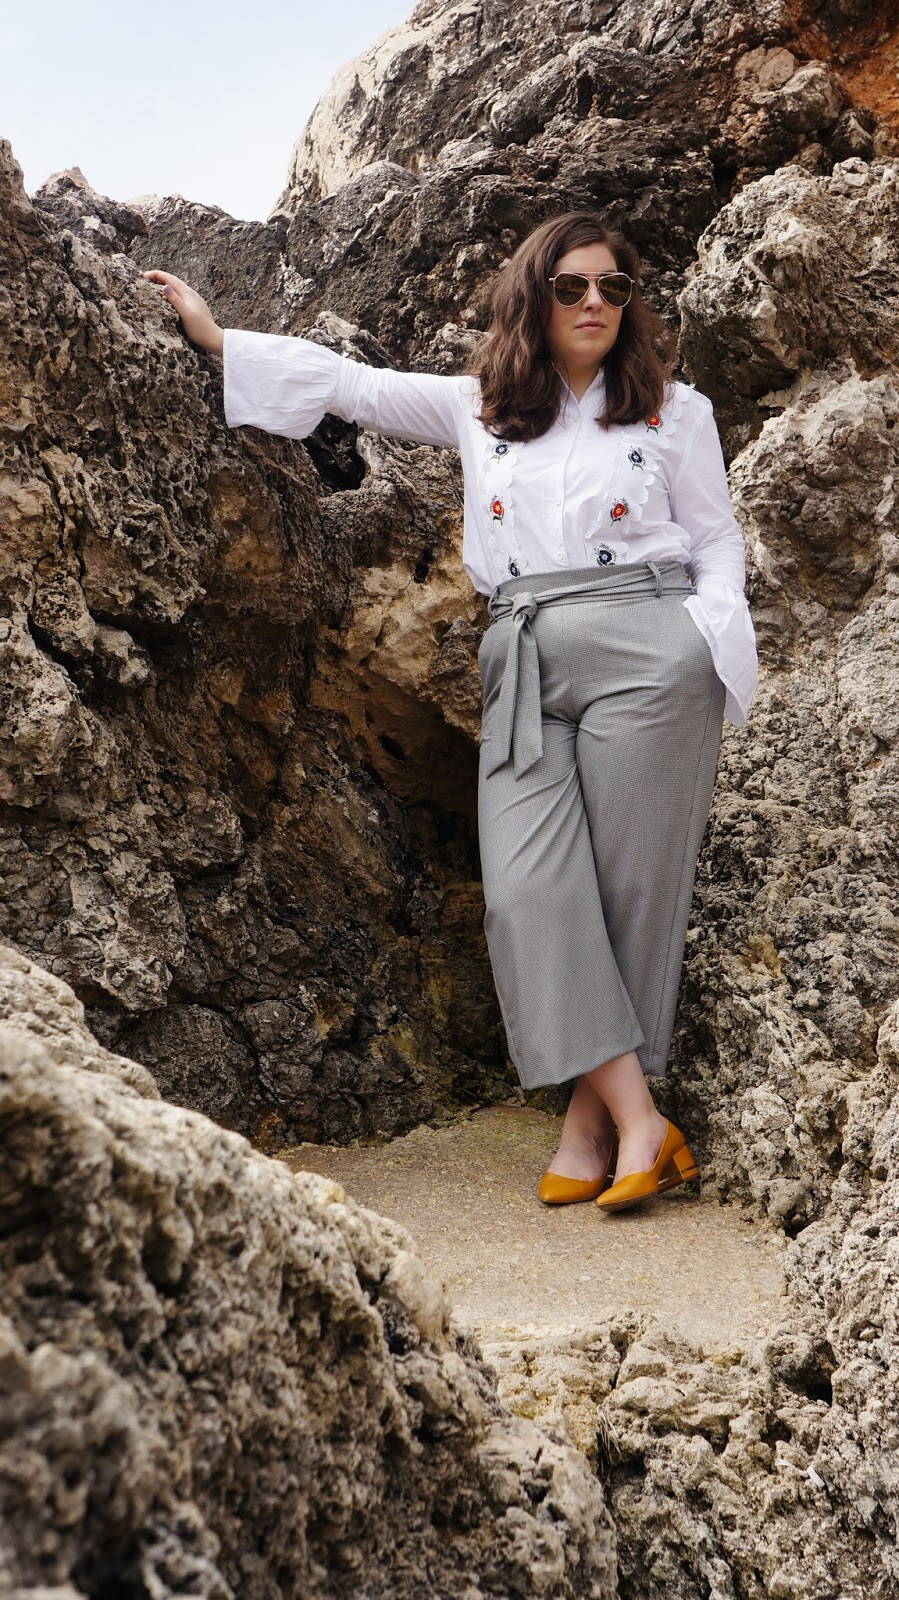 Topshop Shirt, Zara culottes, Zara shoes, Malta beach